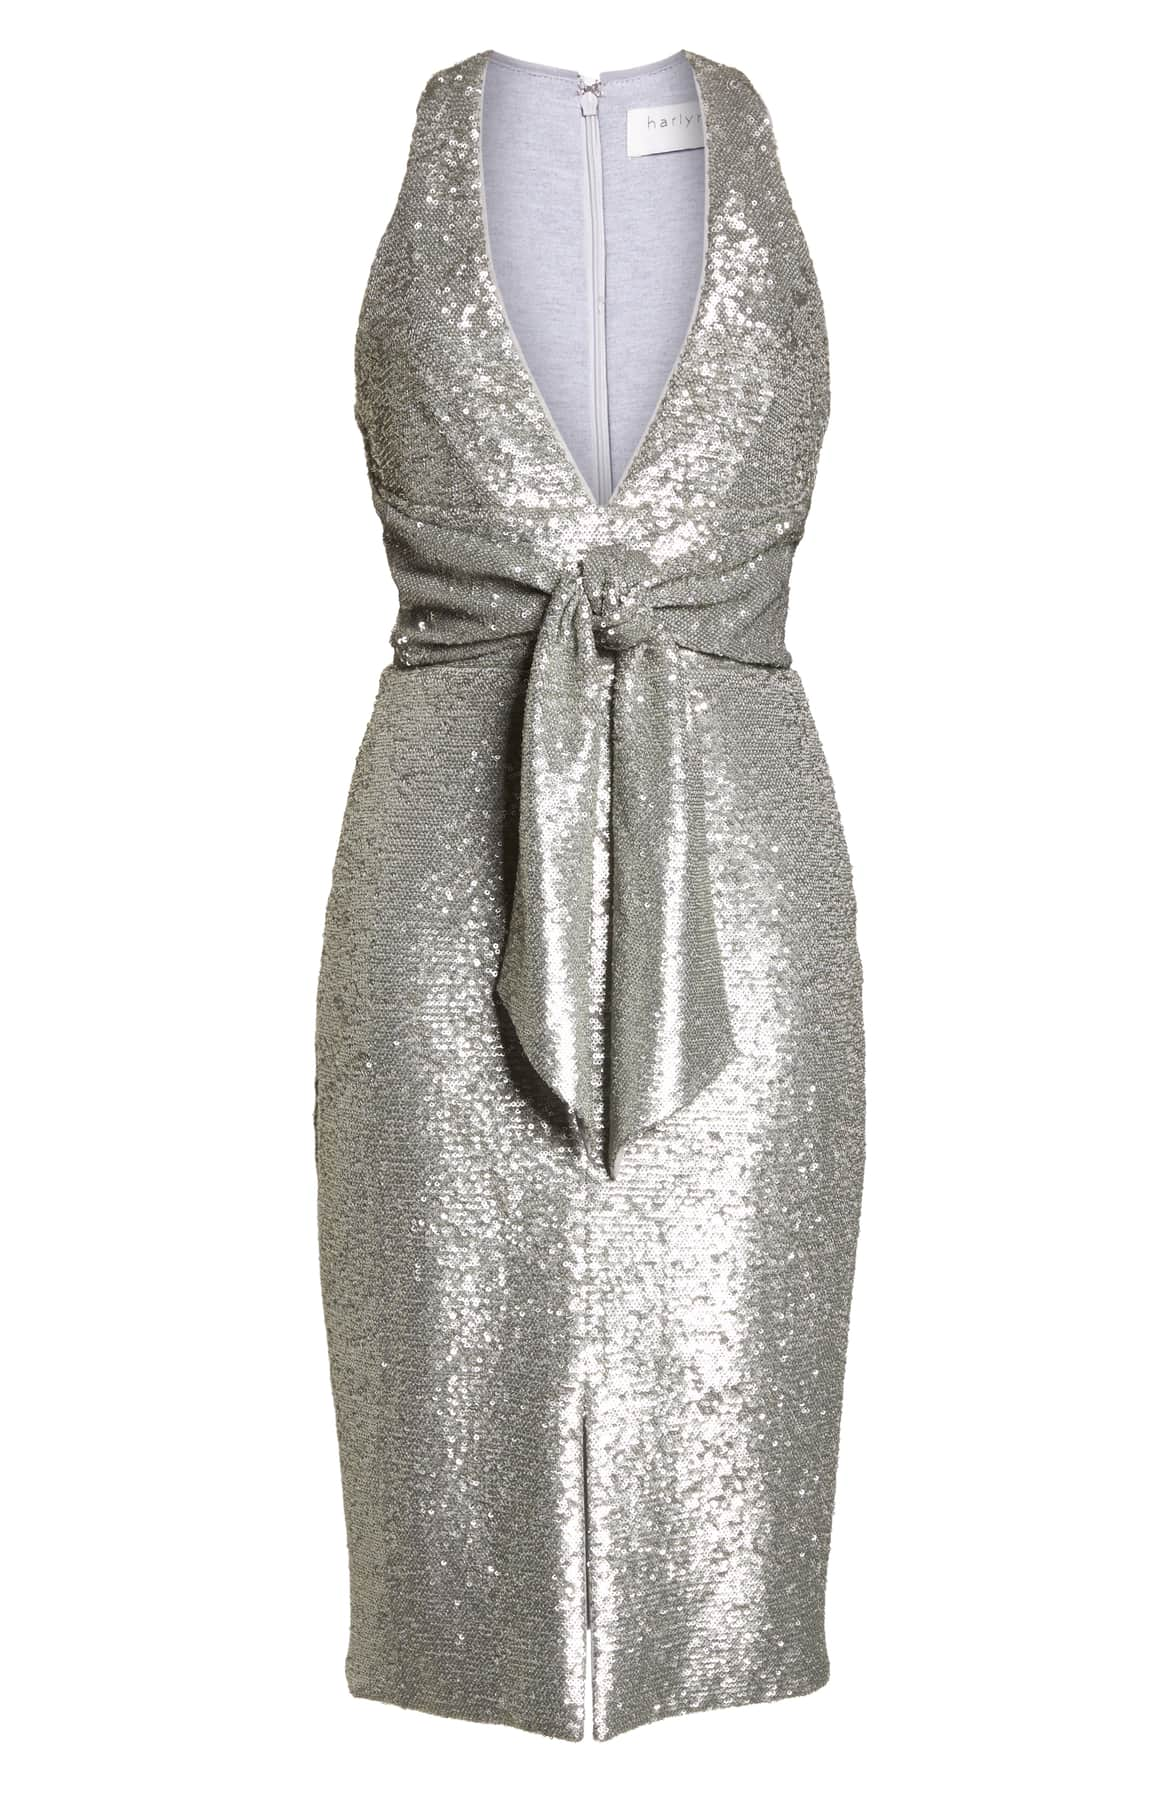 <p>Allover sequins sparkle and shine on a sheath embellished with a tonal tie at the waist and a sultry plunge neck. Sexy AF.{&nbsp;} $178. (Image: Nordstrom){&nbsp;}</p><p></p>